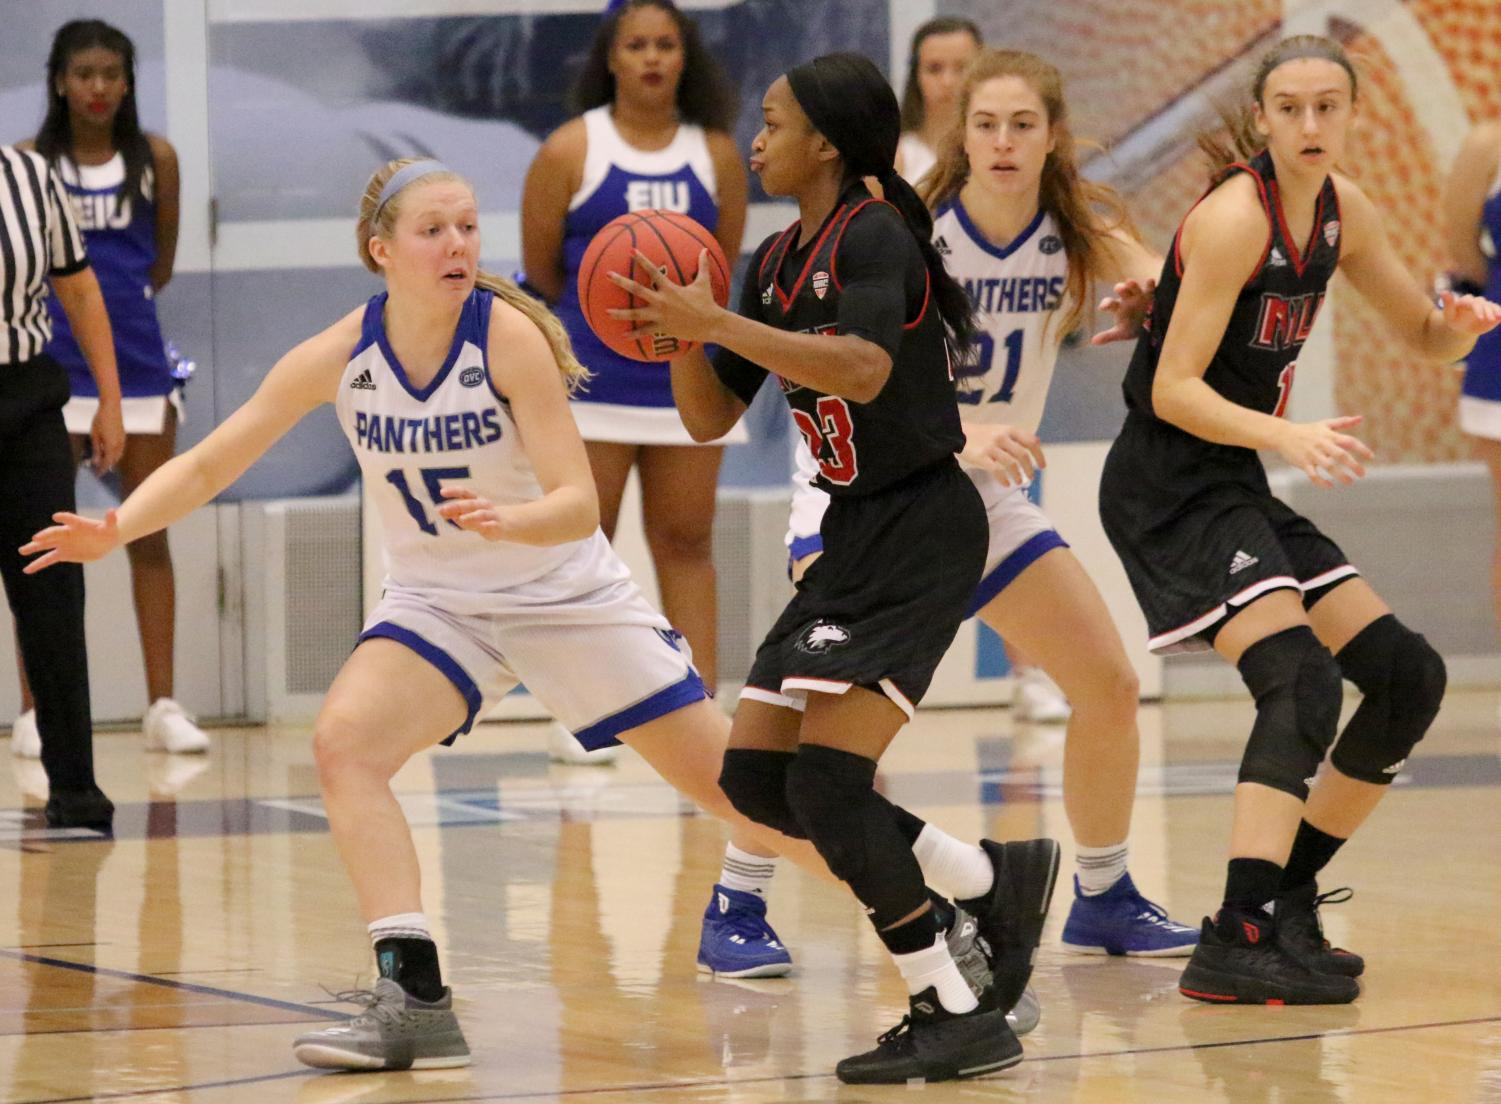 Eastern freshman Taylor Steele guards a Northern Illinois player in the Panthers' 93-64 loss to the Huskies Nov. 10 at Lantz Arena. Steele had nine points off the bench for the Panthers Tuesday night in the teams 77-69 loss to Cleveland State.